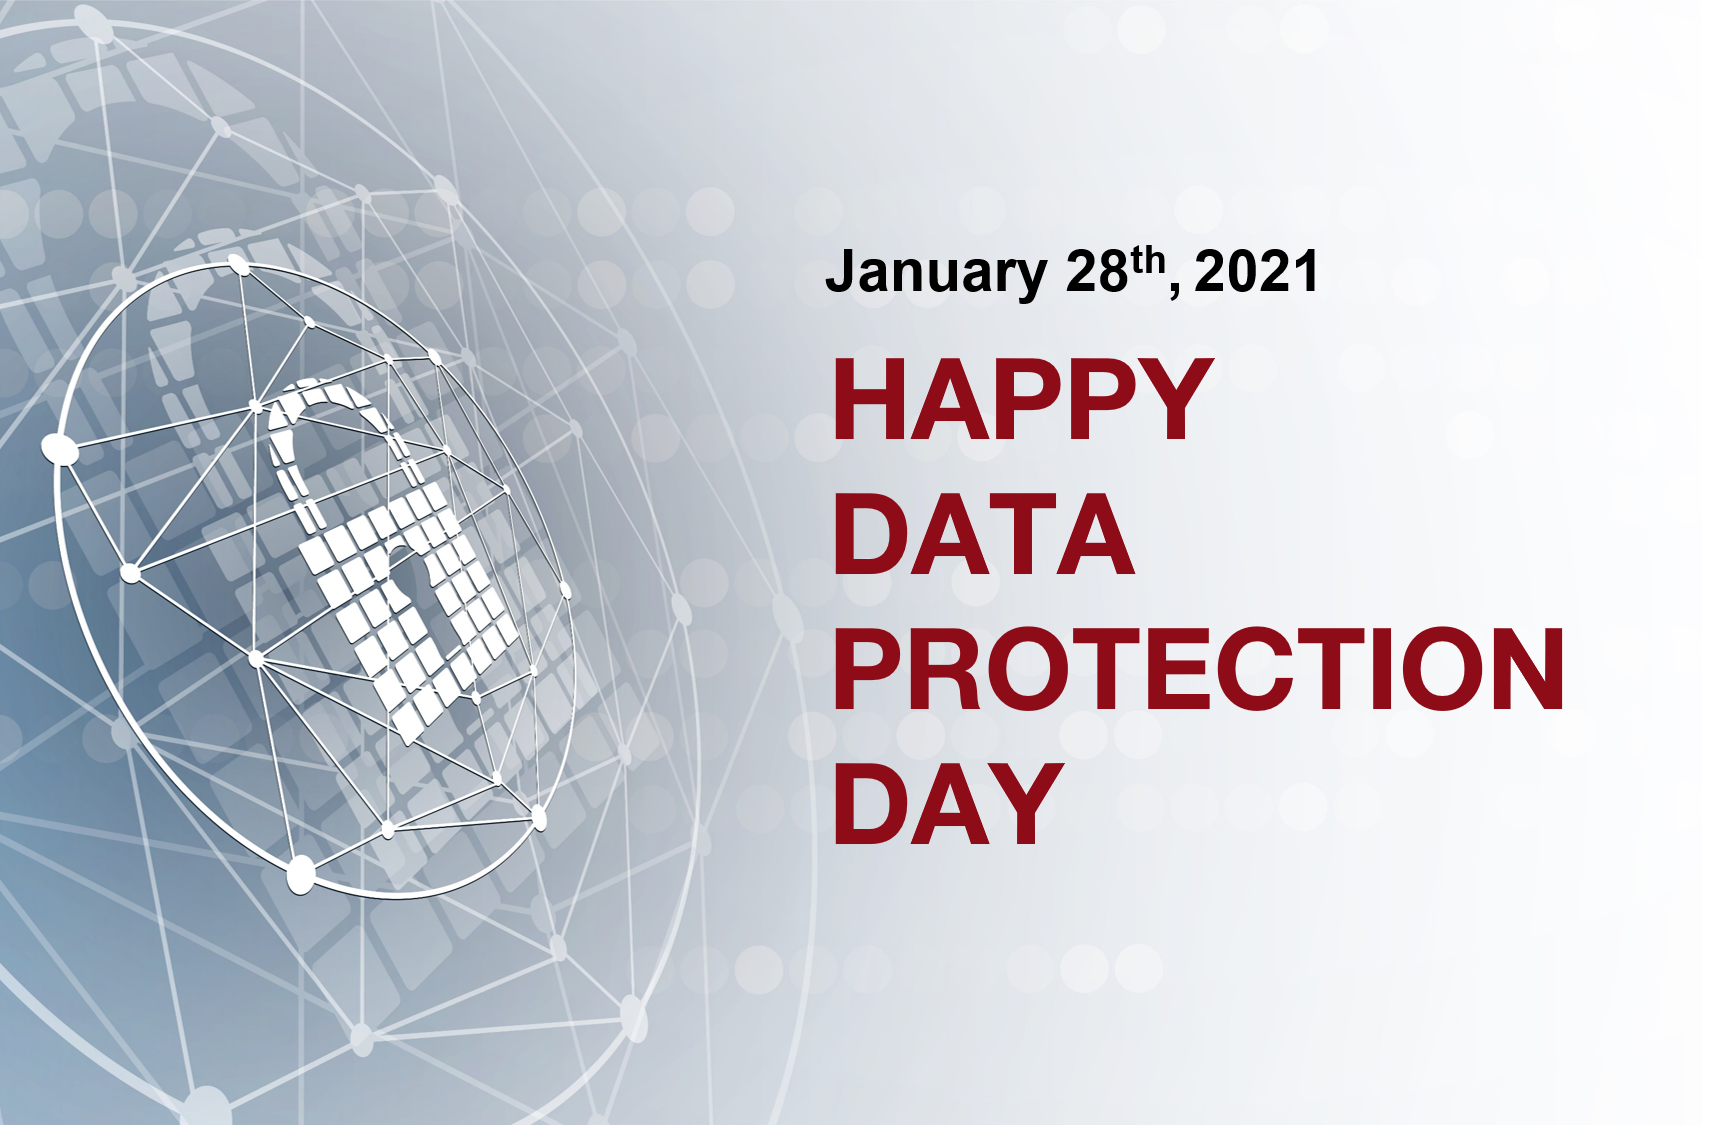 Happy Data Protection Day, 28th of January 2021